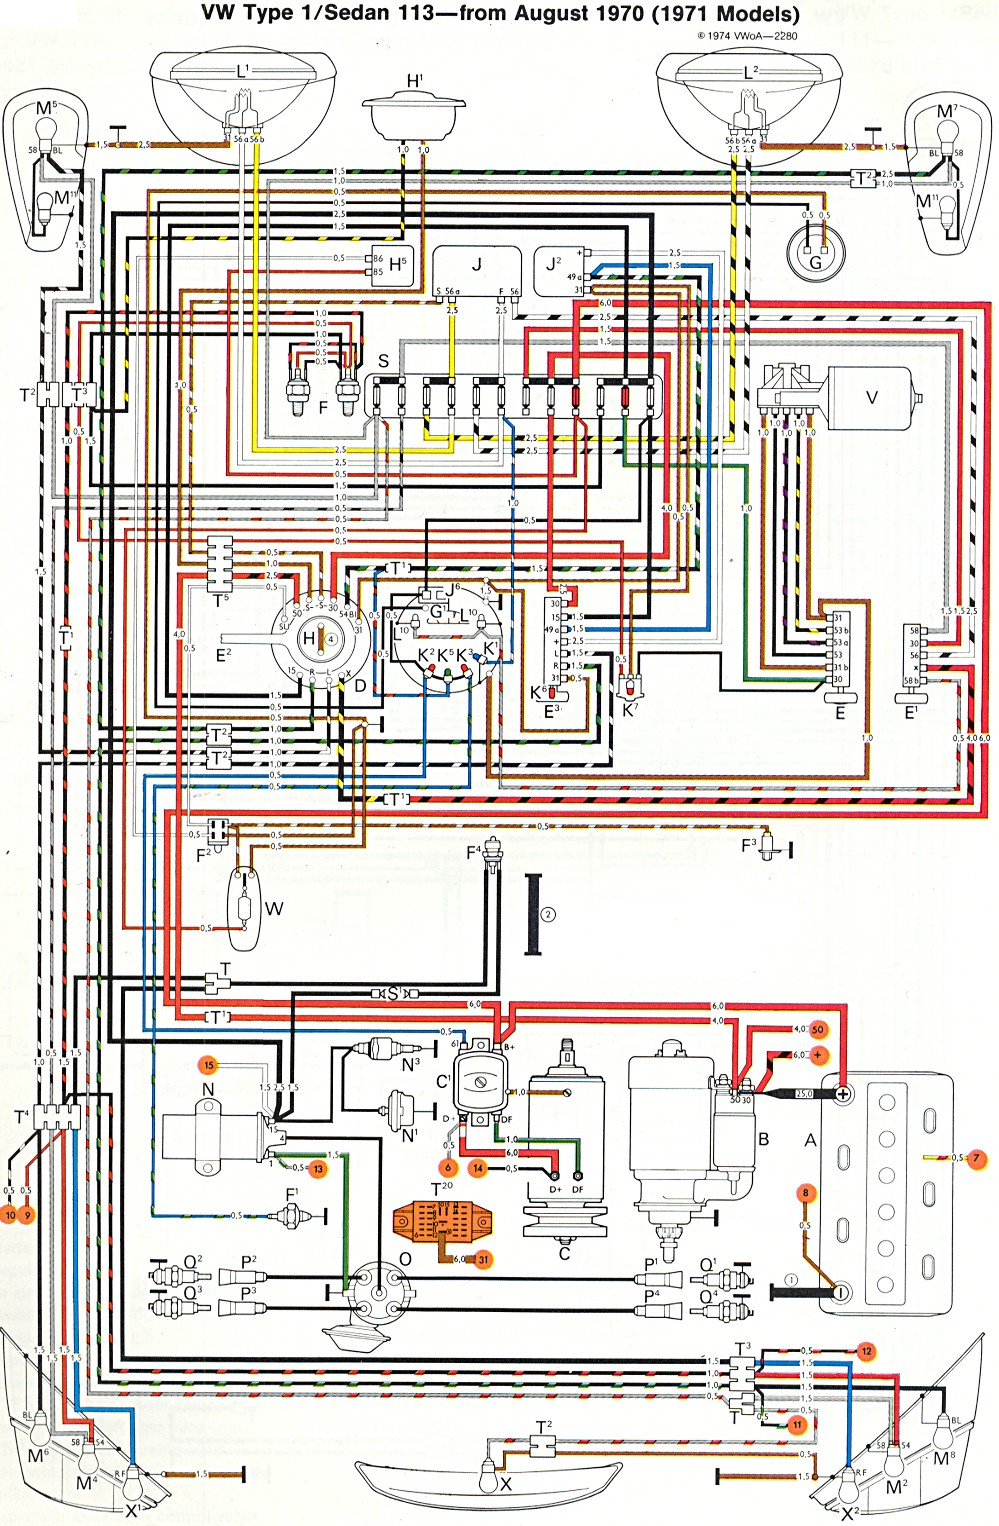 hight resolution of 1971 volkswagen wiring diagram simple wiring diagram rh david huggett co uk 2002 vw beetle fuse